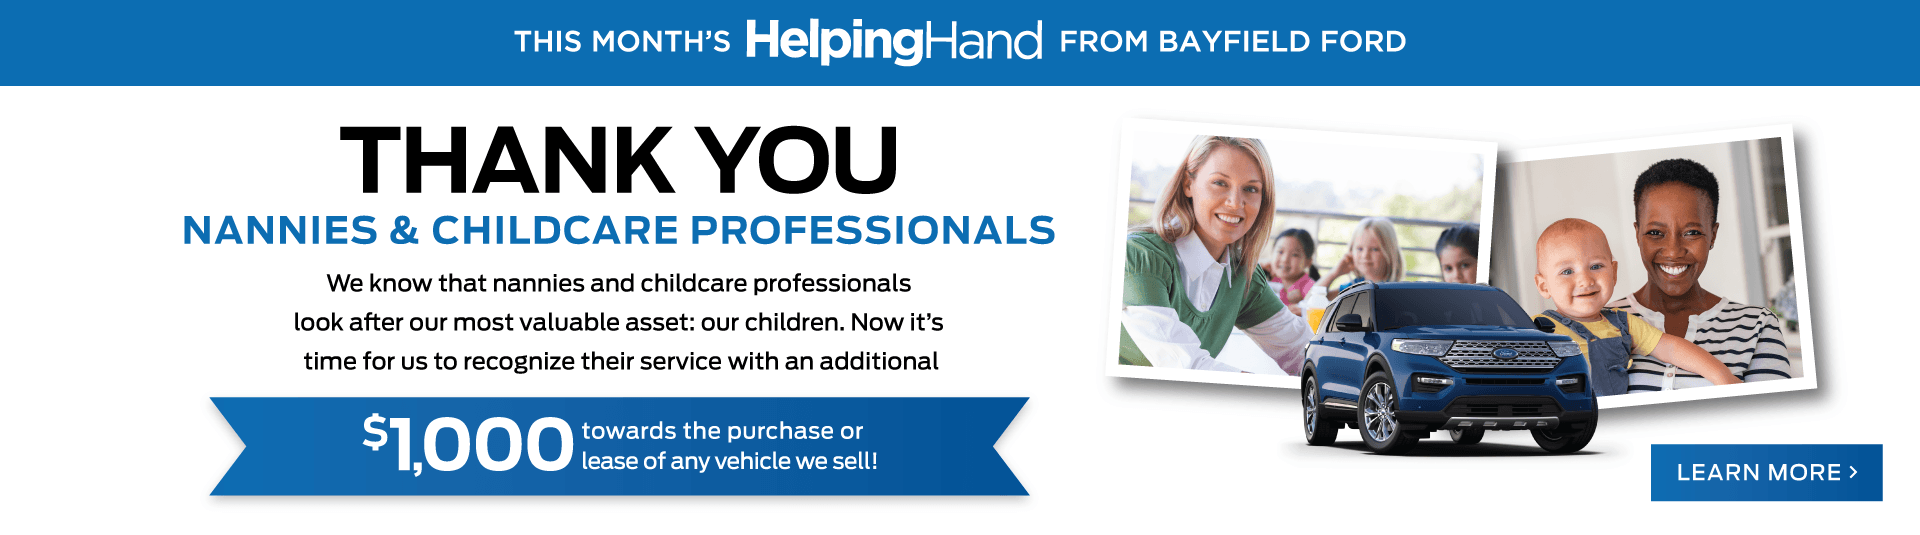 Helping-Hand-Nannies-and-Childcare-Professionals